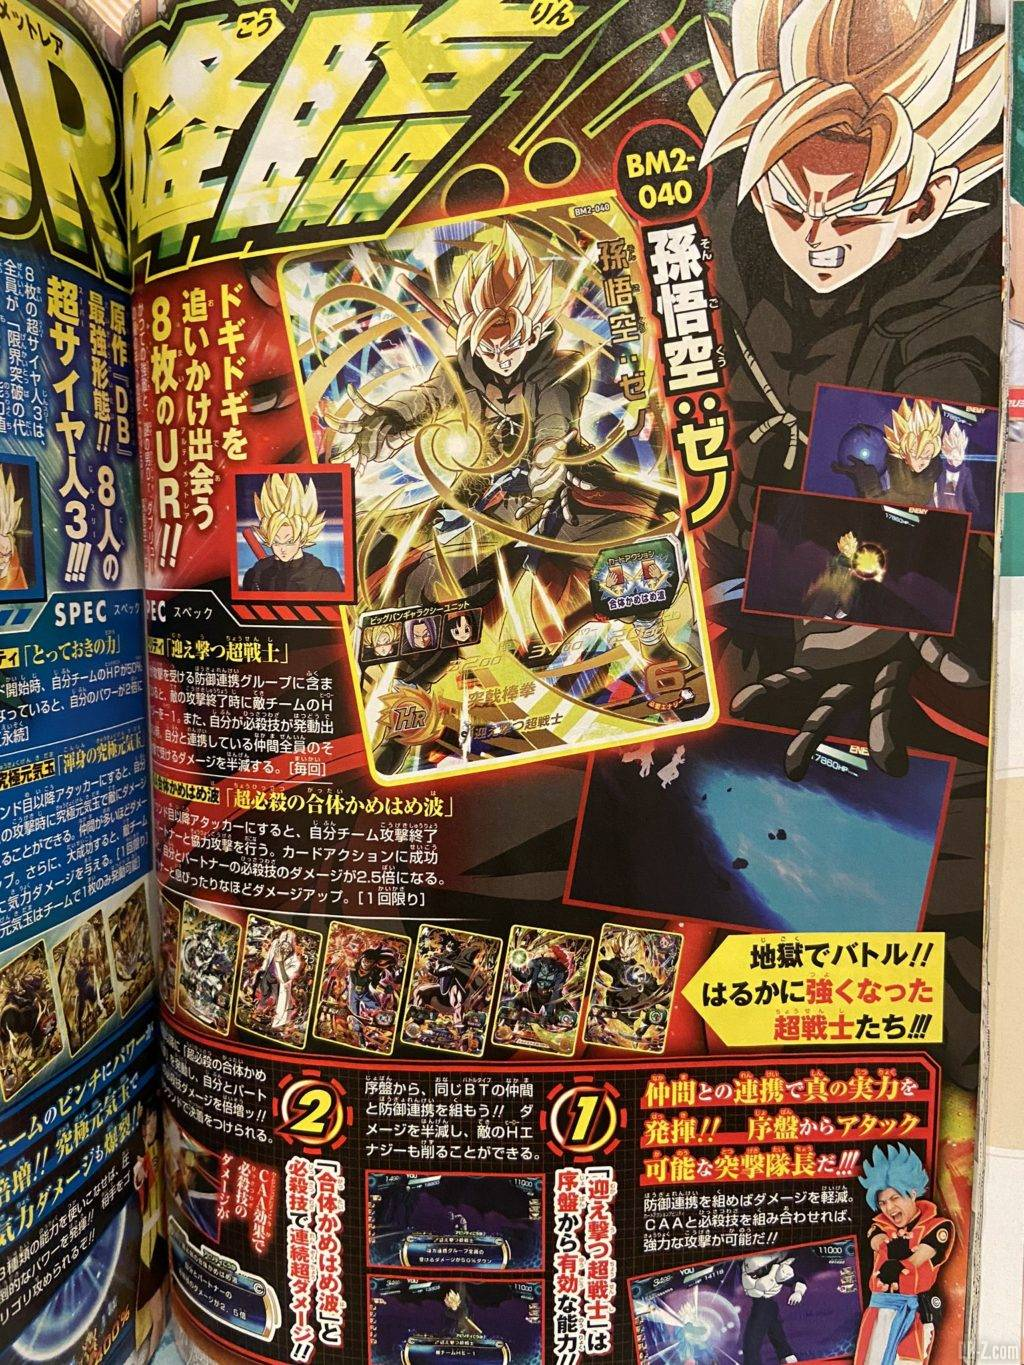 SDBH Big Bang Mission 2 V Jump 2